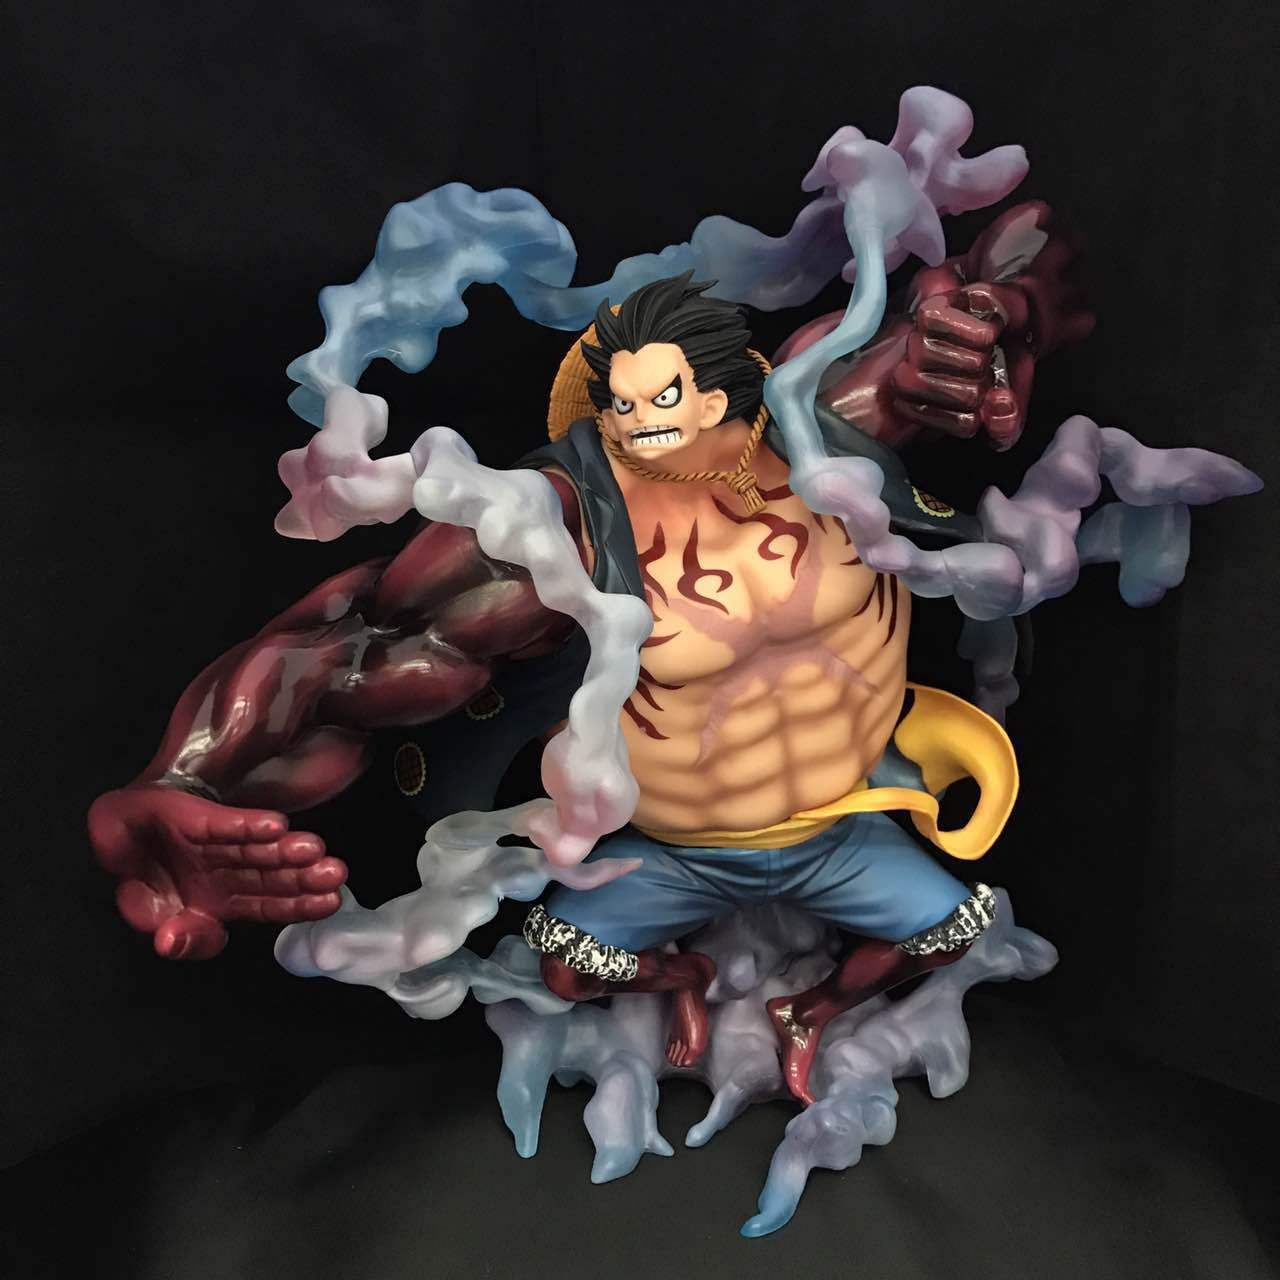 One Piece Gear Fourth Luffy Action Figure 1/6 scale painted figure Monkey D Luffy PVC figure Toy